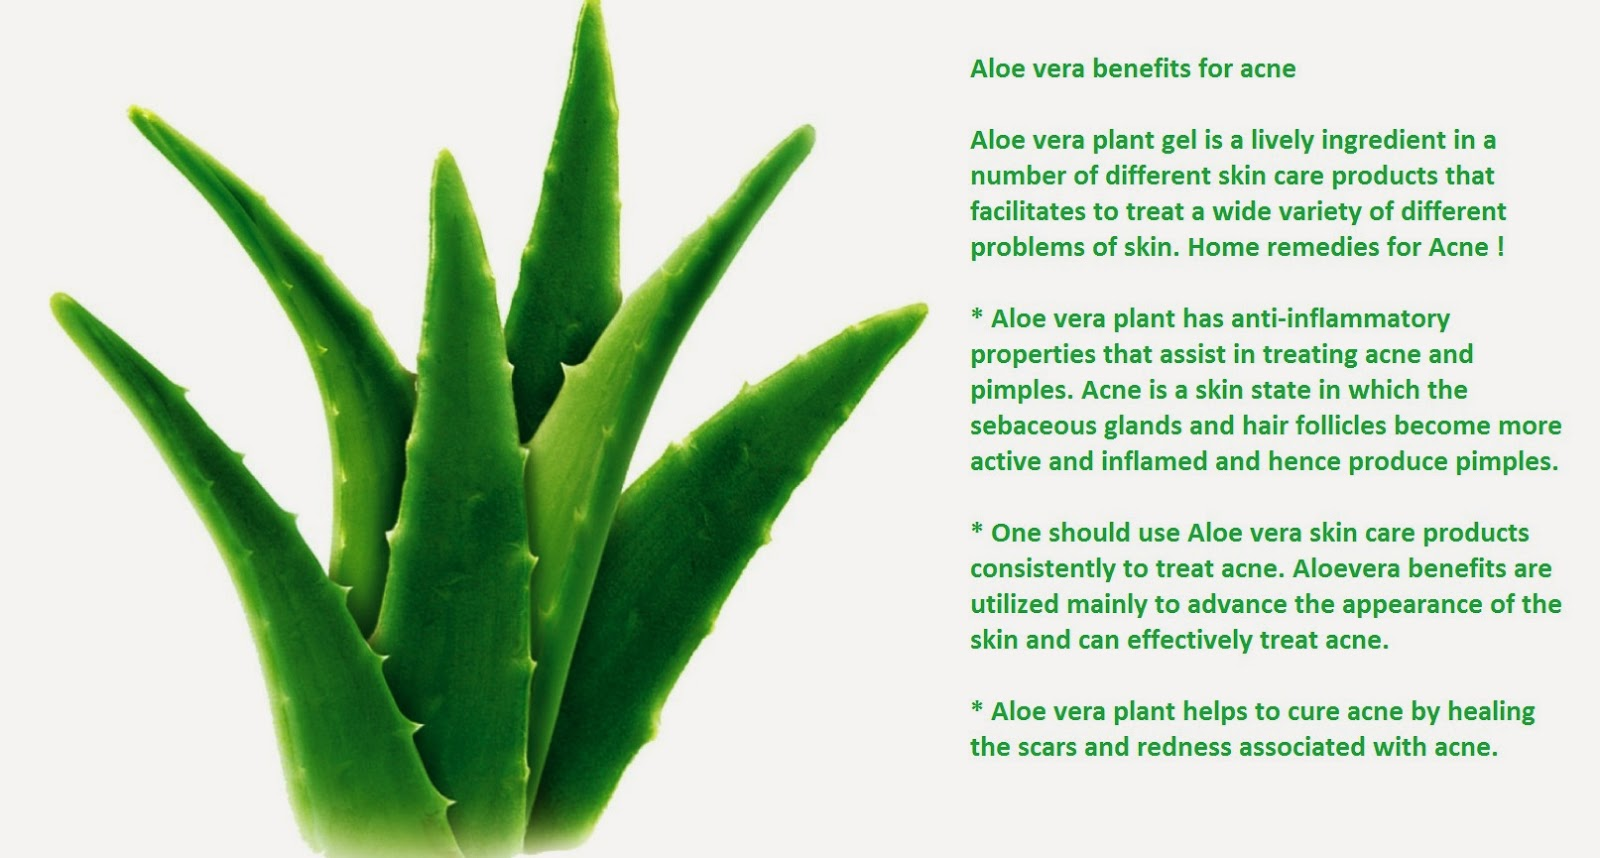 health benefits of aloe vera aloe vera plant gel is an enthusiastic